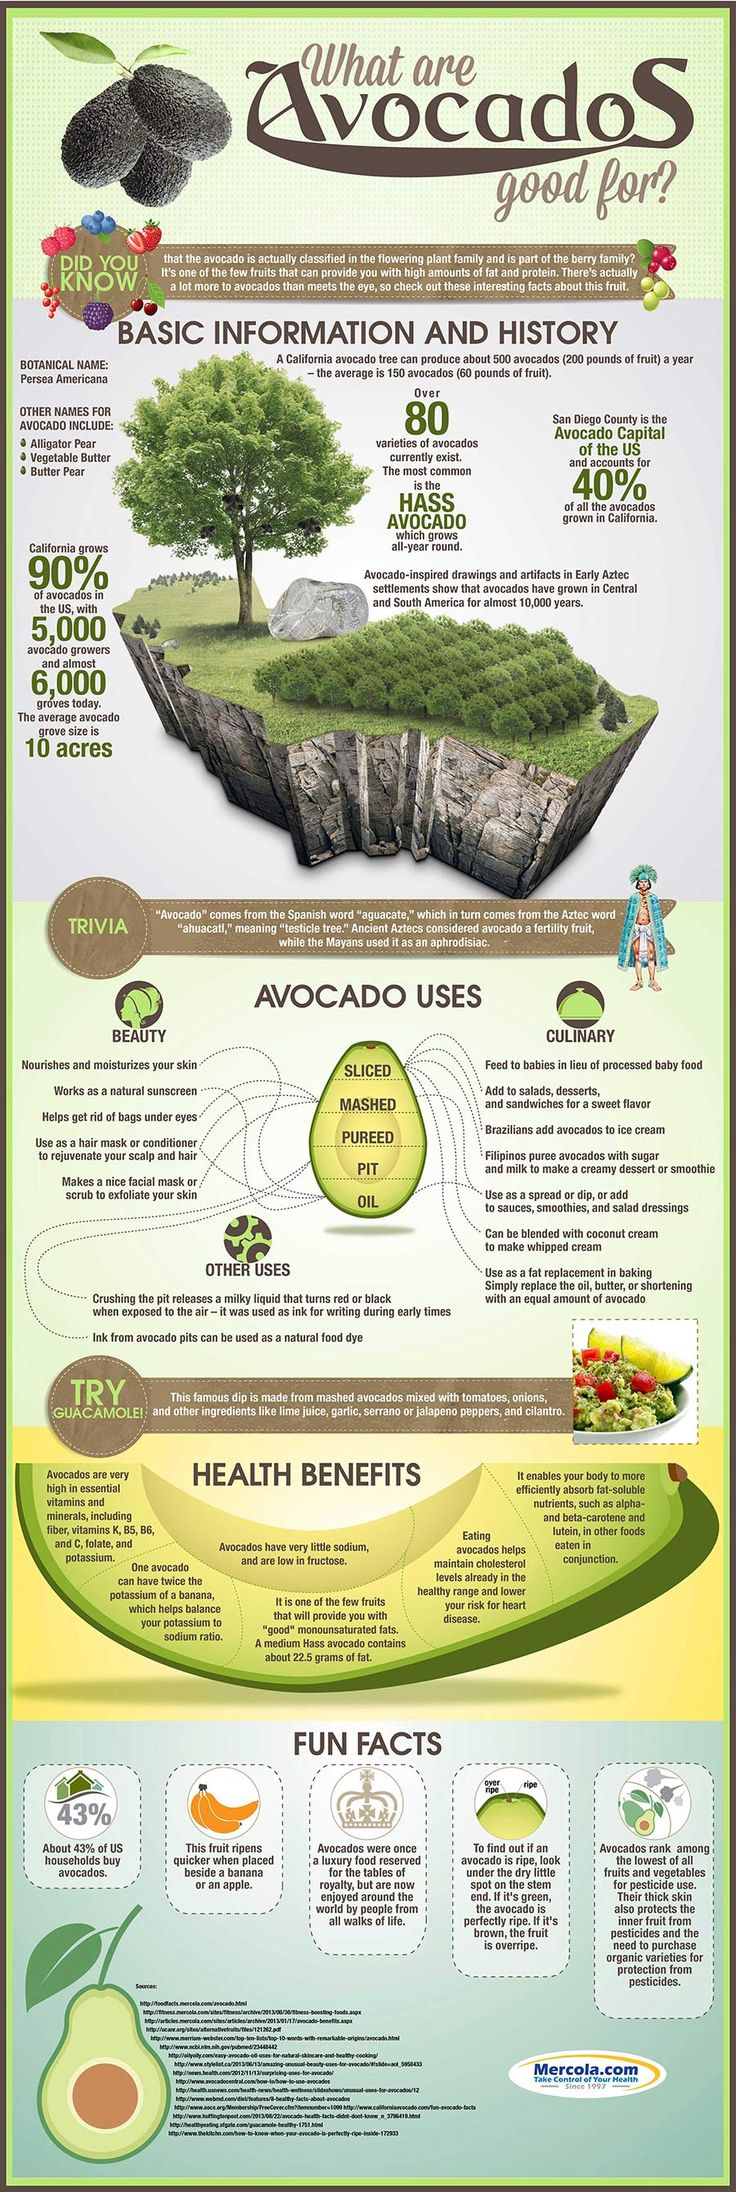 Look no further for the best avocado recipes to be found! Avocados are one of the best foods you can prepare. They bring a lot to the table in the form of healthy monounsaturated and polyunsaturated fats. They also have plenty of fiber. Here are the uses, health benefits and super delicious recipes